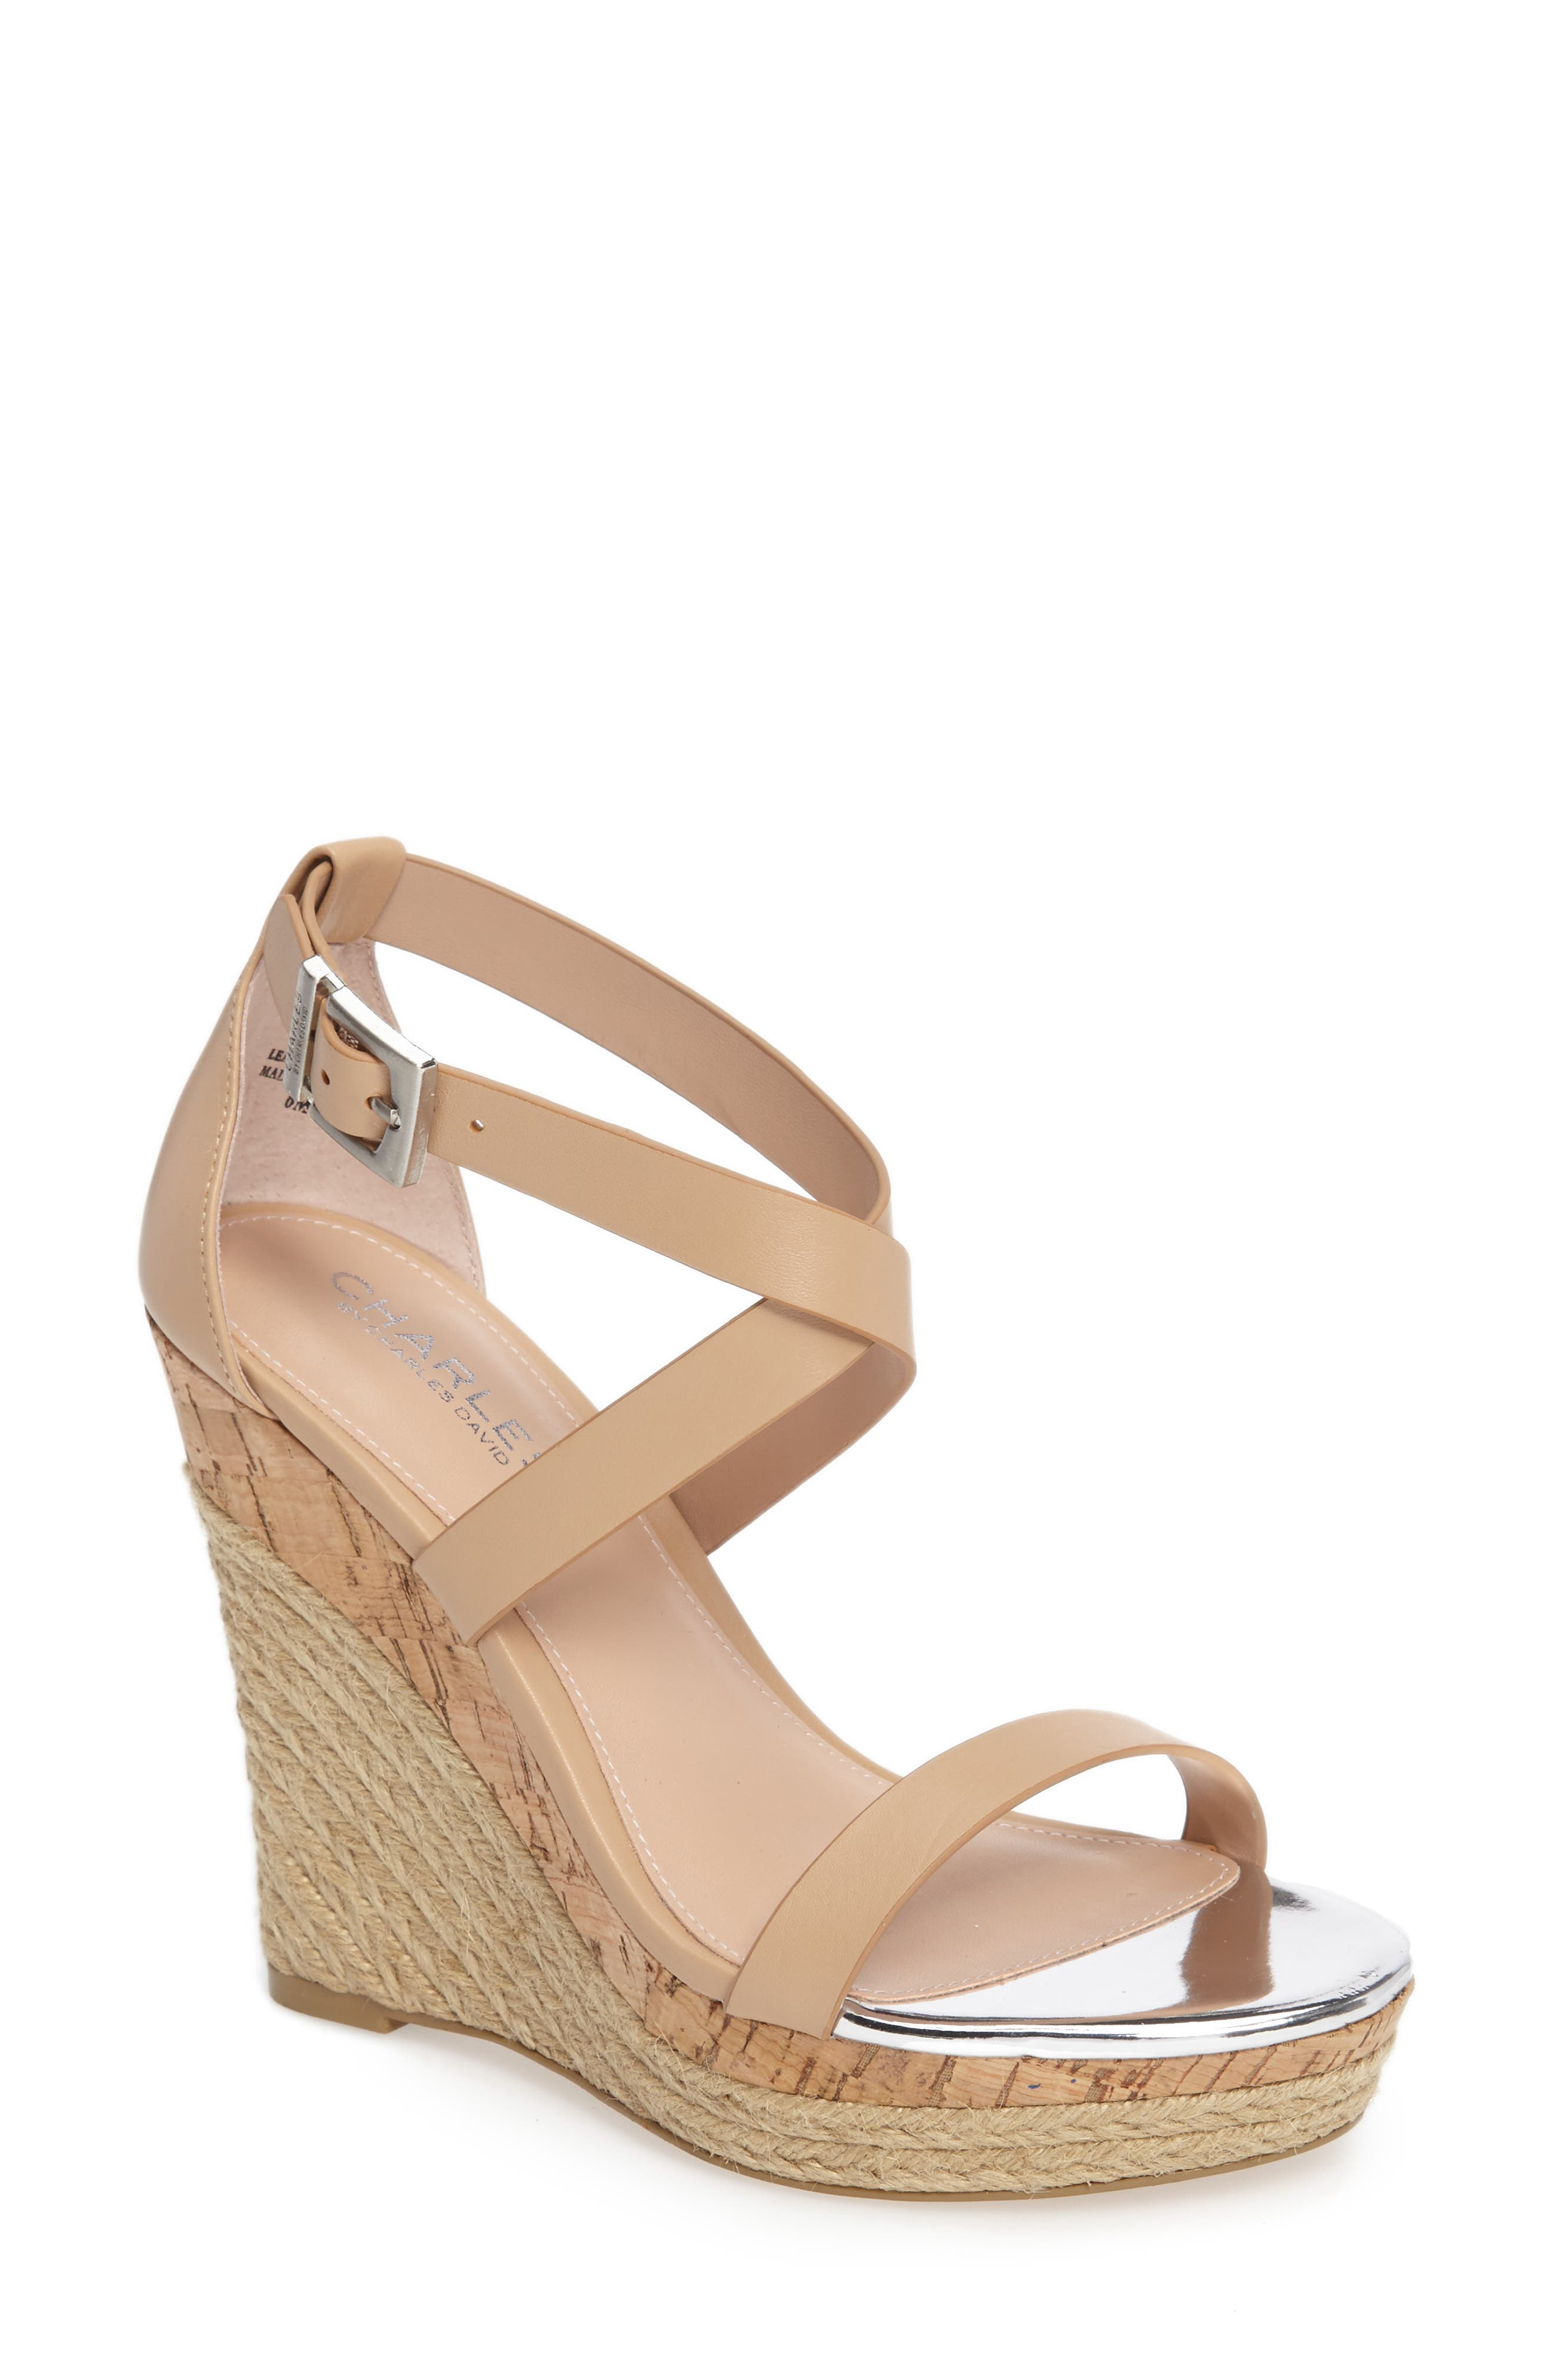 Aden Platform Wedge Sandal,                             Main thumbnail 1, color,                             Nude Leather